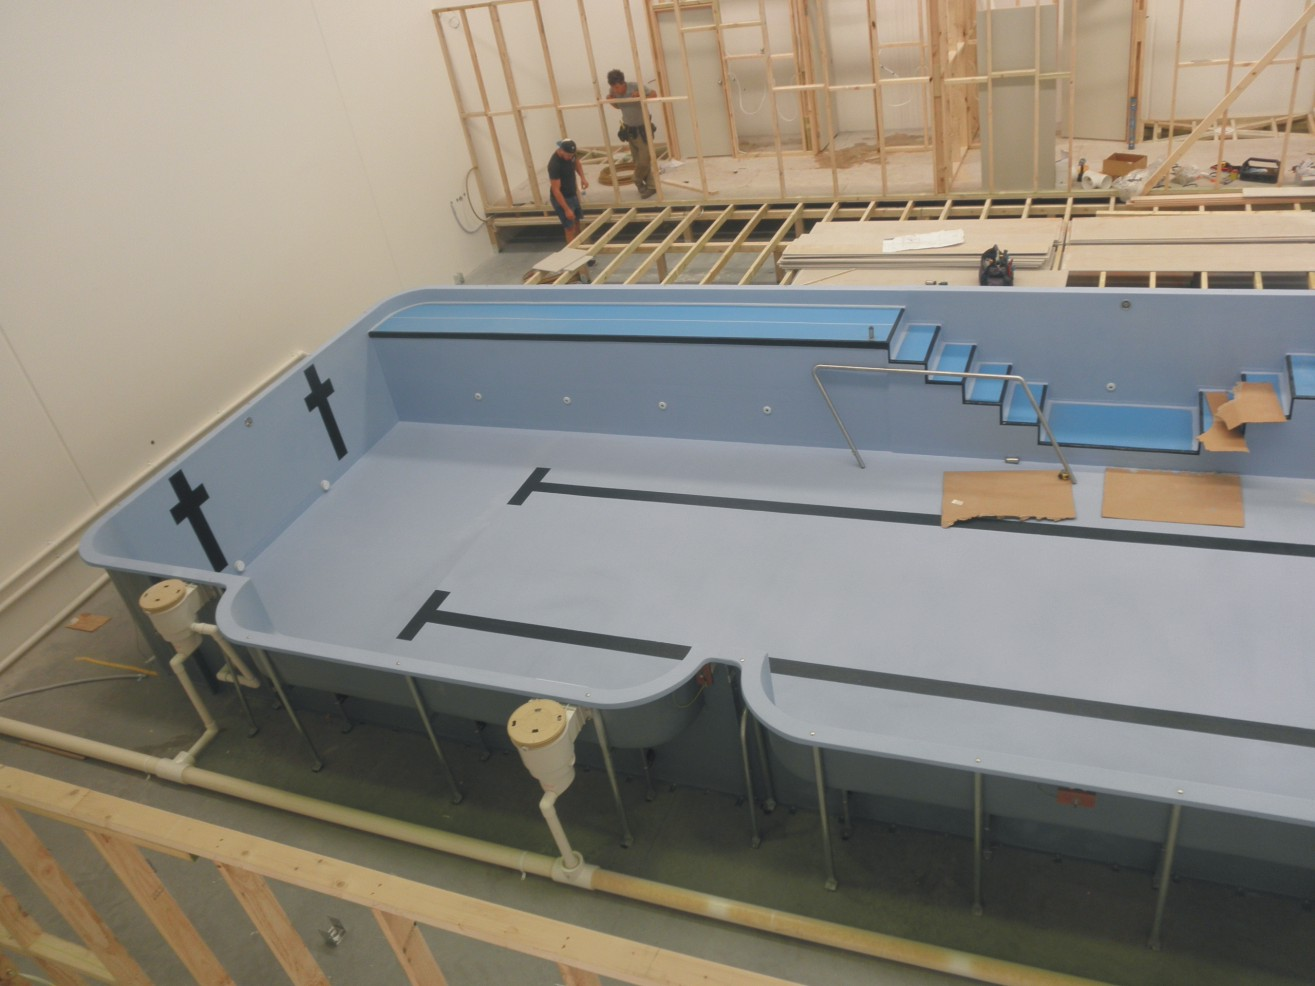 Free Standing And Portable Pools For Swim Schools Pool Link